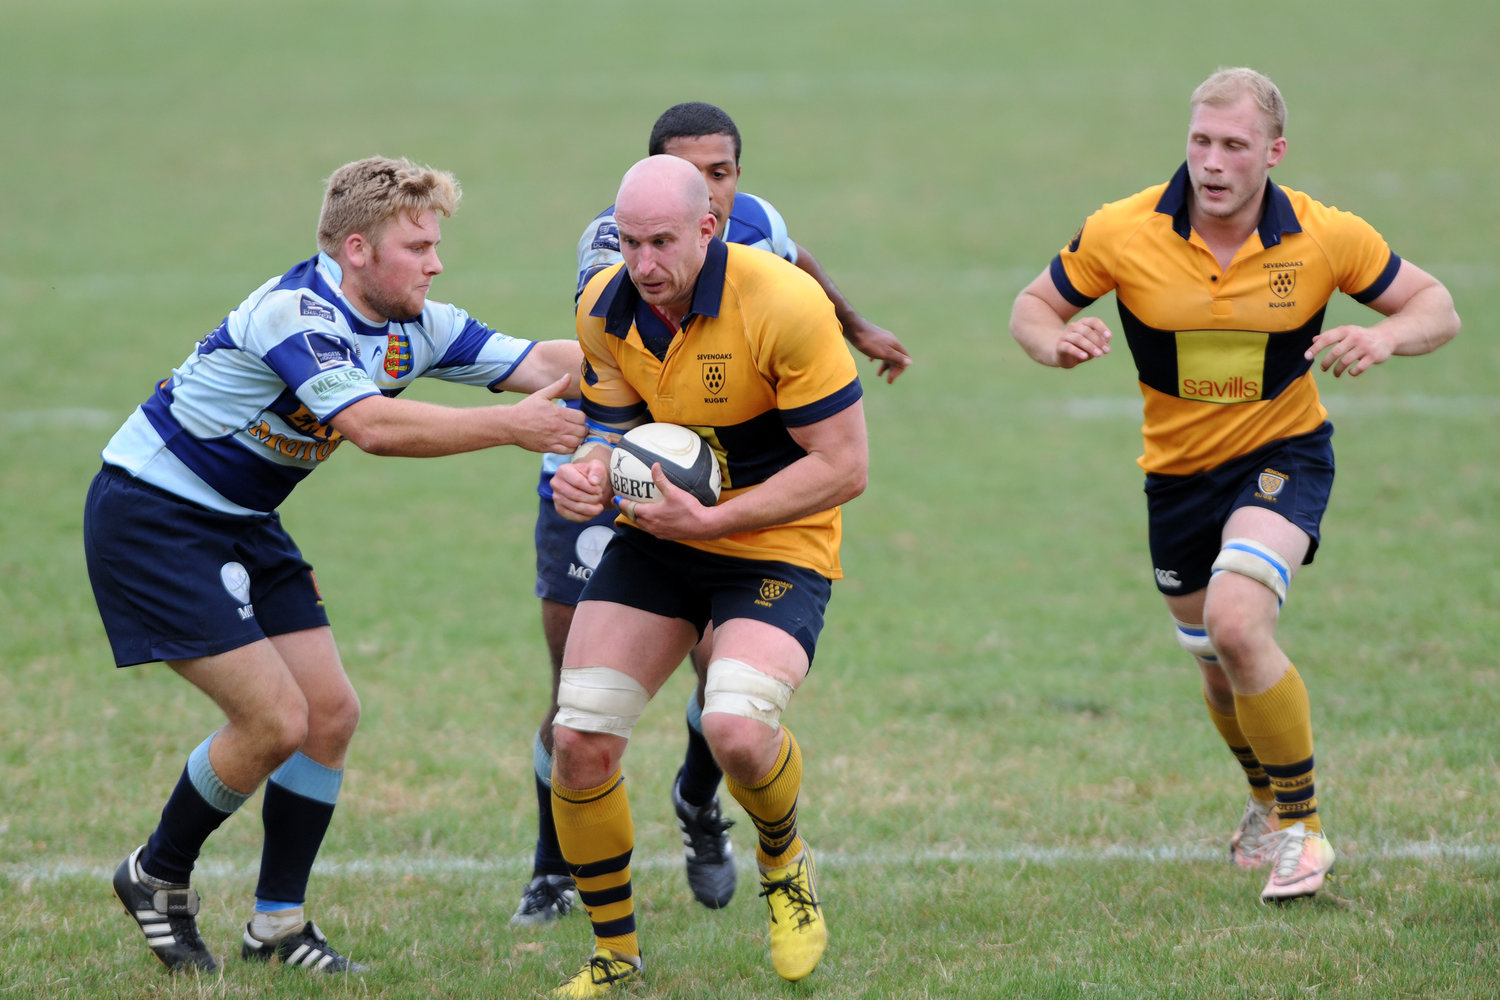 Leading from the front: Captain Stu Coleman was on the score sheet for Oaks with a try in the second half